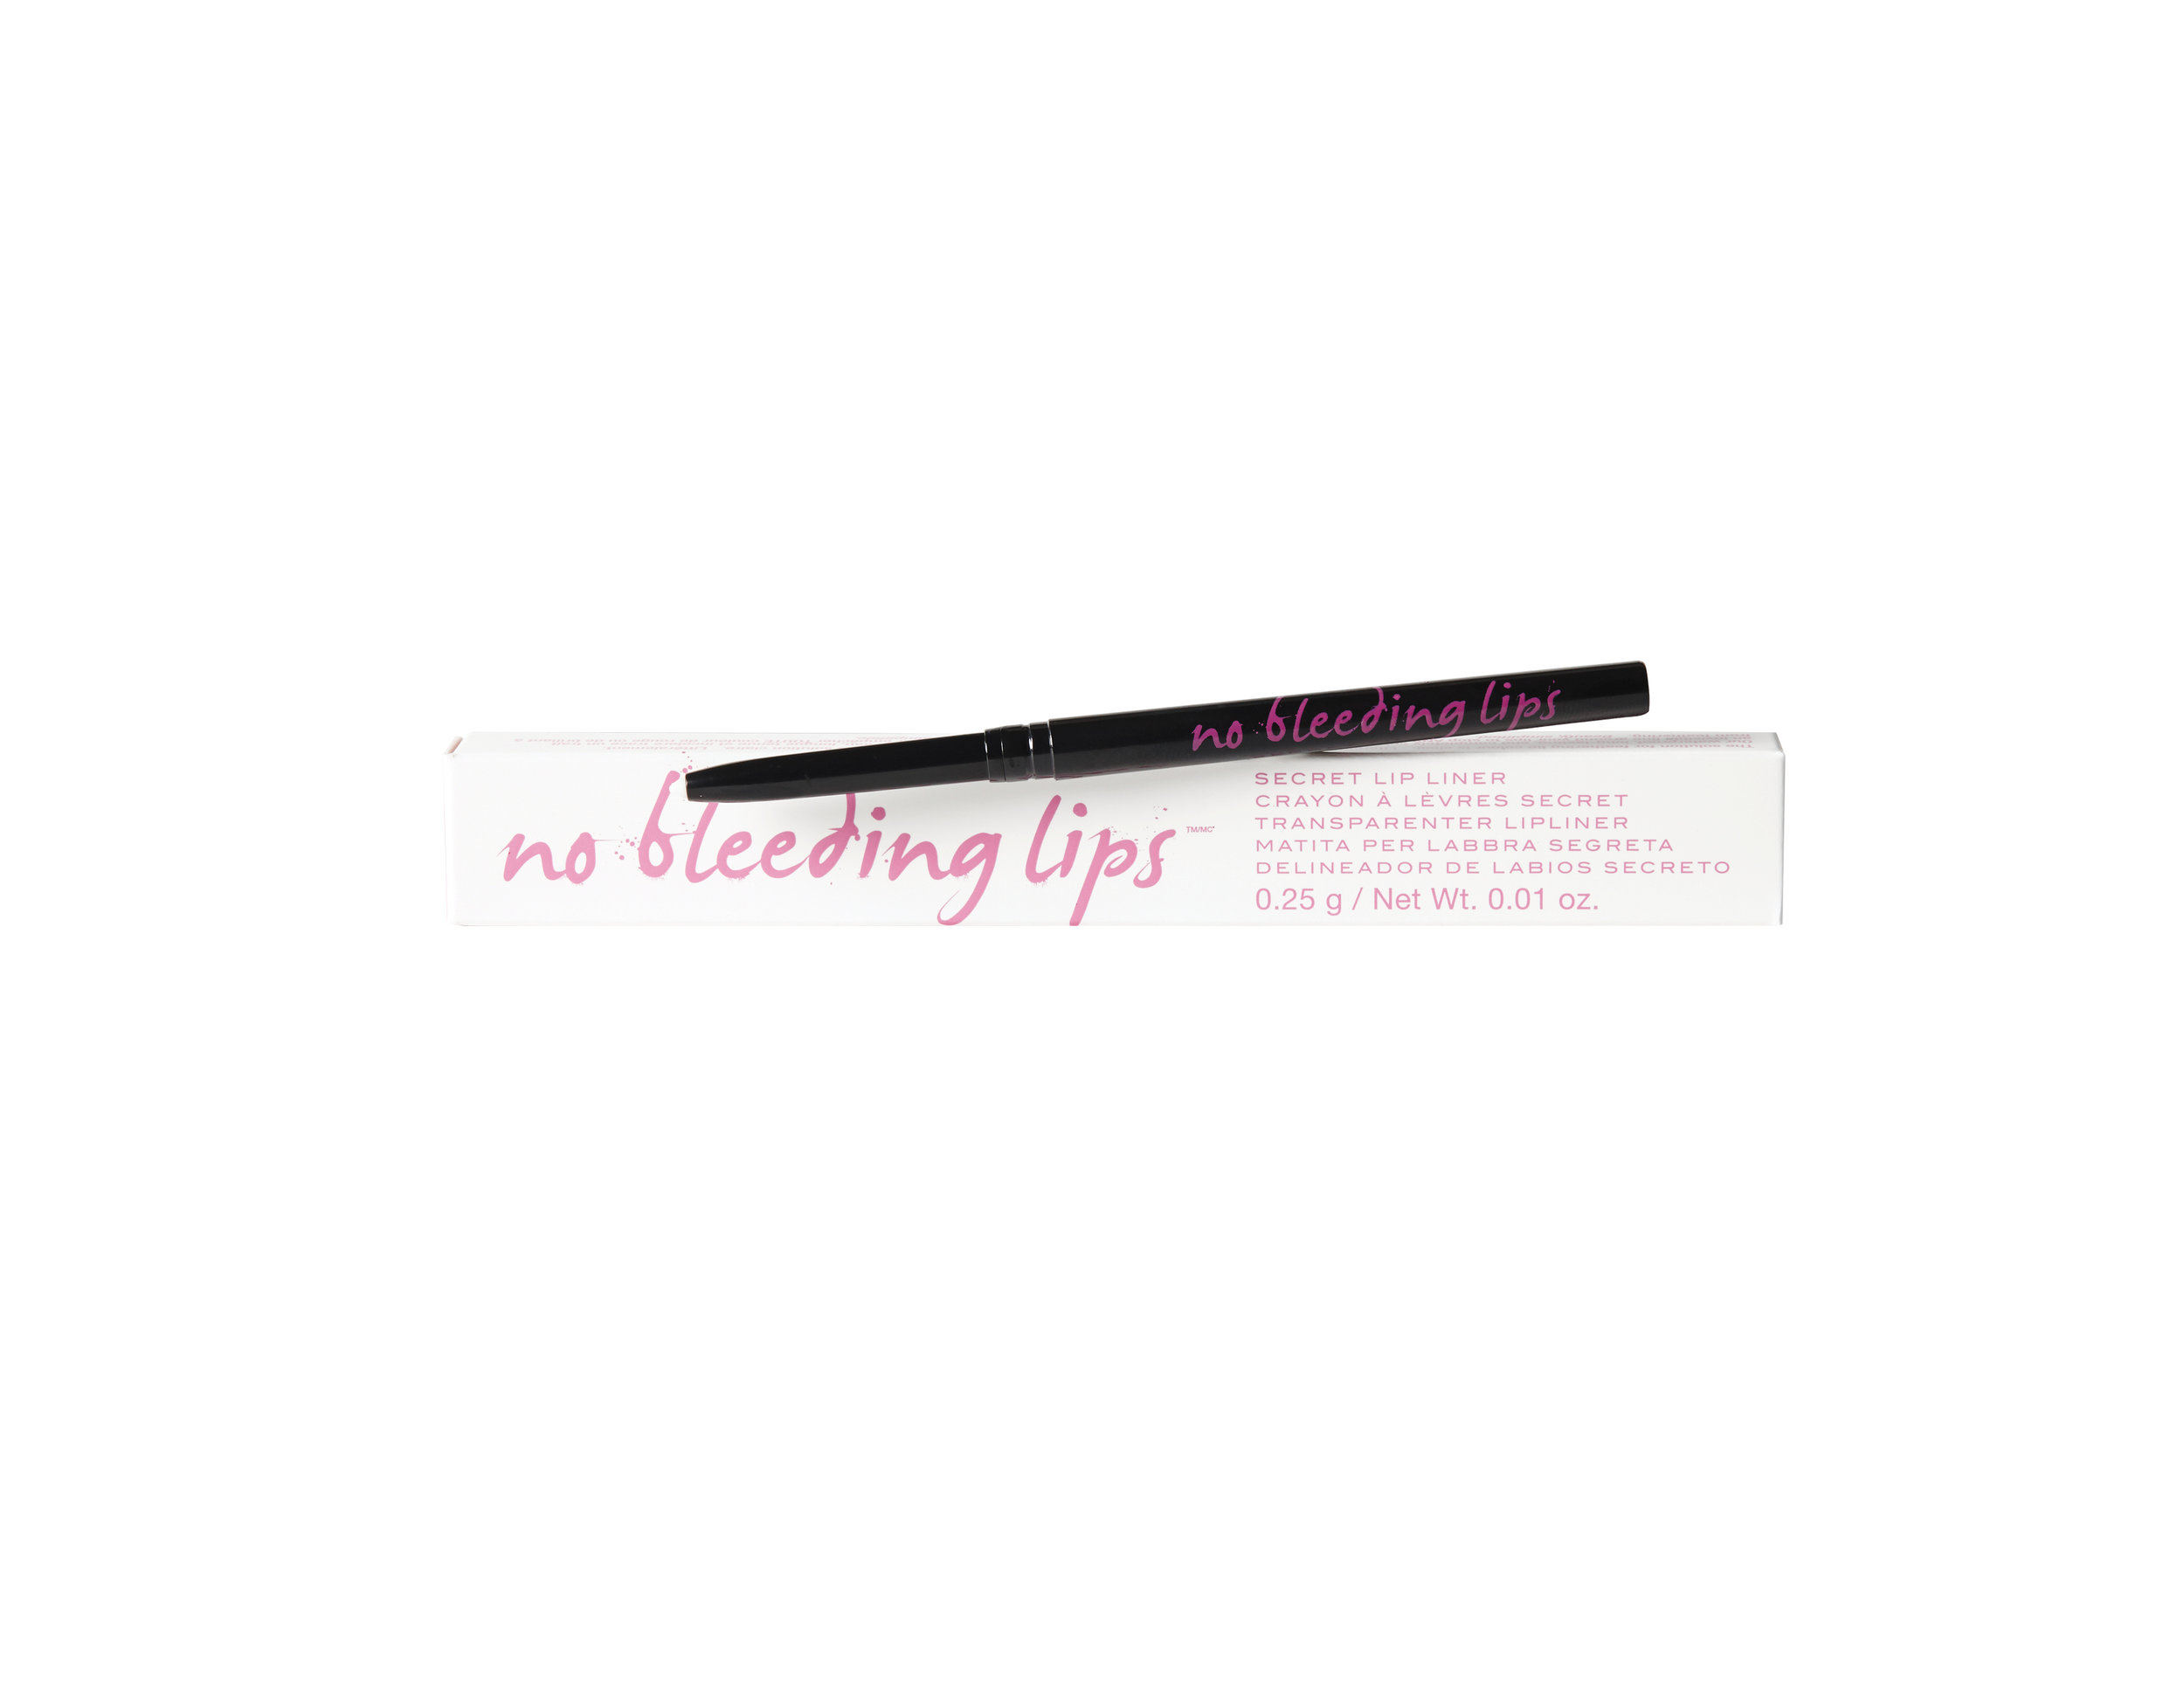 KNOW Cosmetics No Bleeding Lips, $20.00. Available at Shoppers Drug Mart, Hudson's Bay, Beauty Boutique.